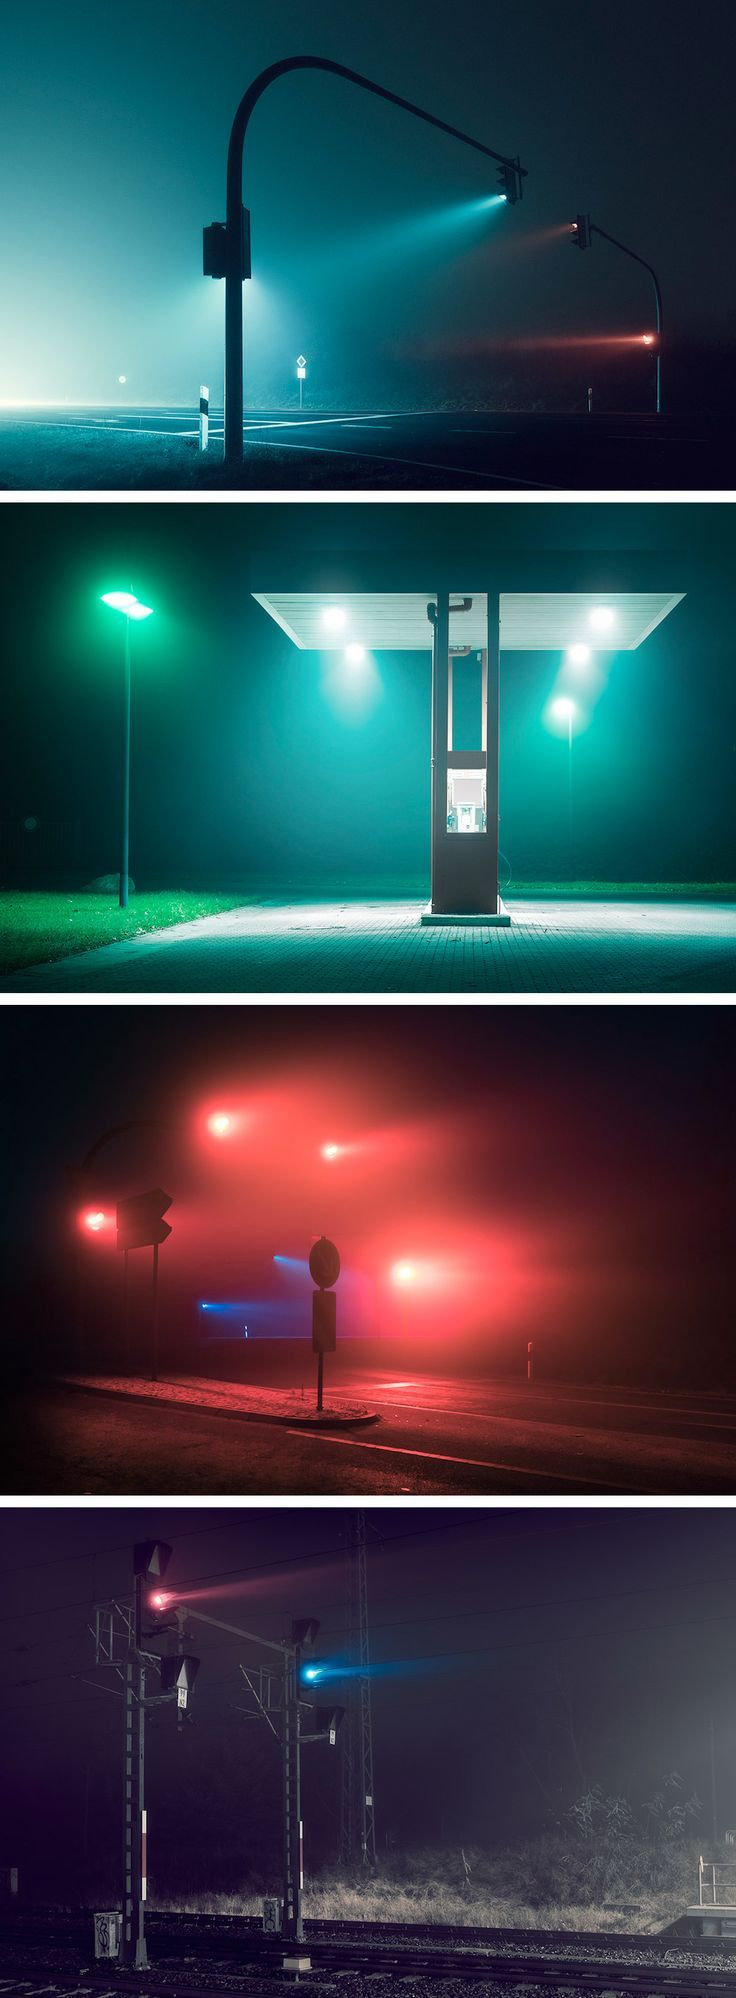 Street photography, urban photography, moddy photography. Photographer Andreas Levers Captures the Hazy Glow of Unpopulated Streets at Night